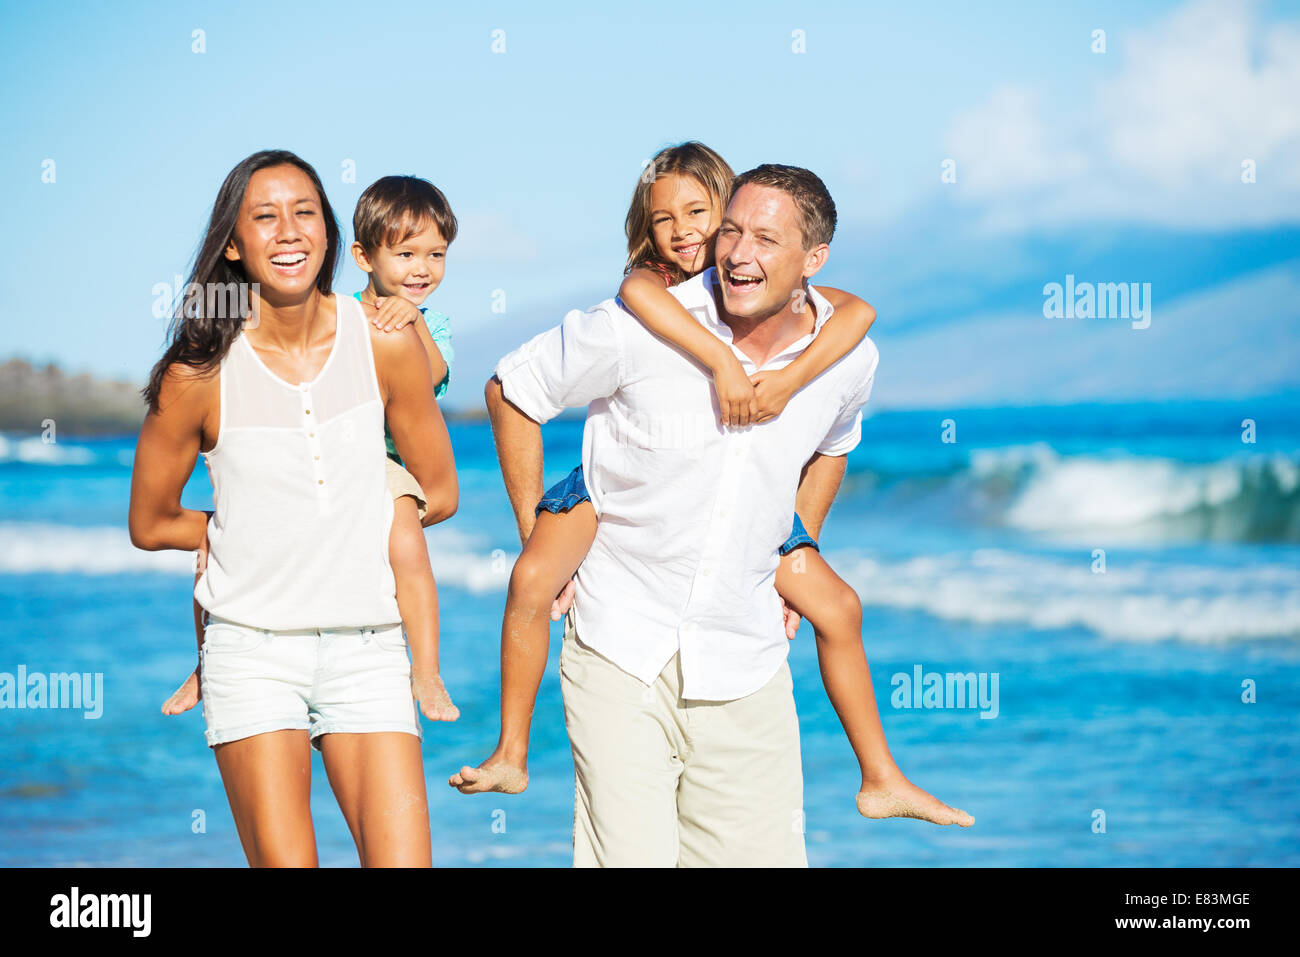 Happy Mixed Race Famille de quatre personnes sur la plage Photo Stock